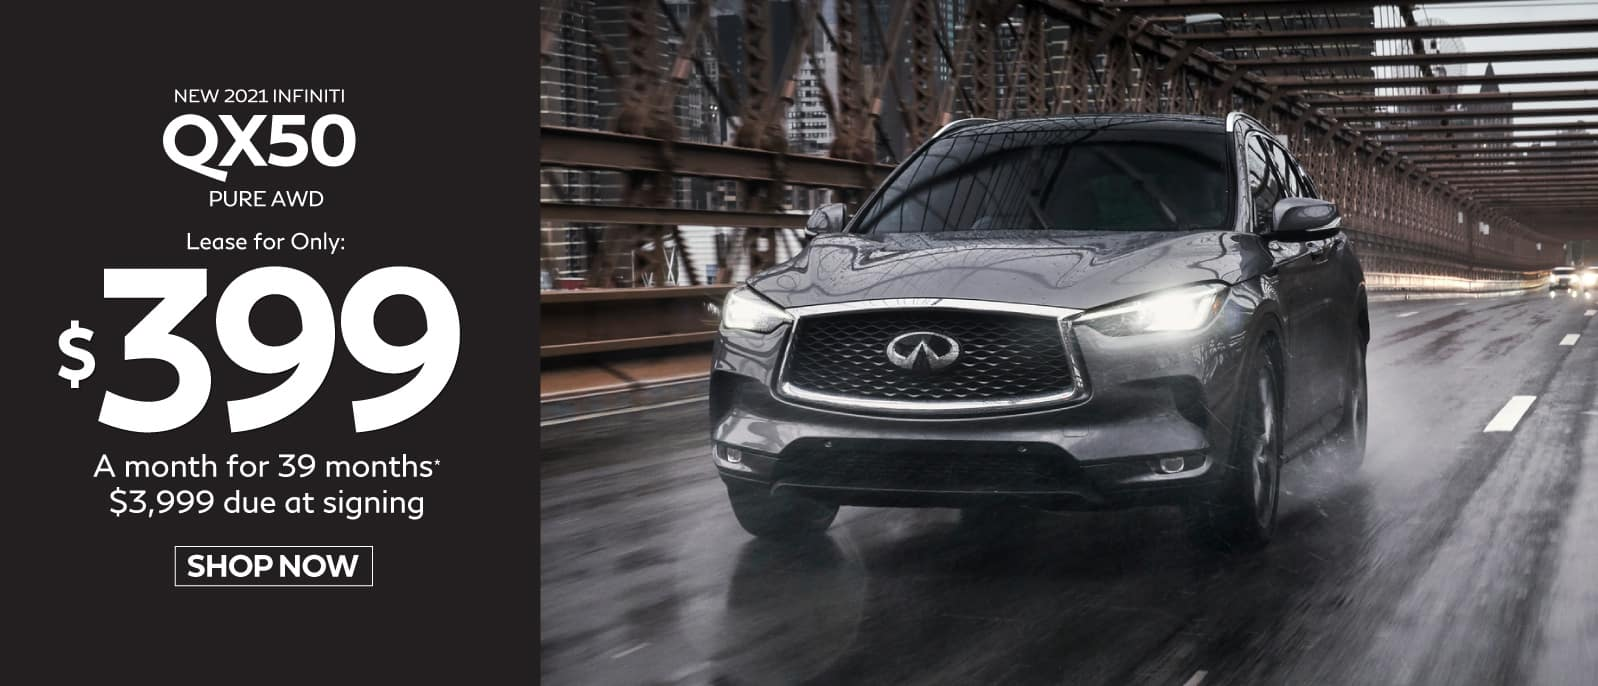 2021 QX50 Luxe AWD lease for only $399 Per month for 39 months $3,999 due at signing. Shop now.